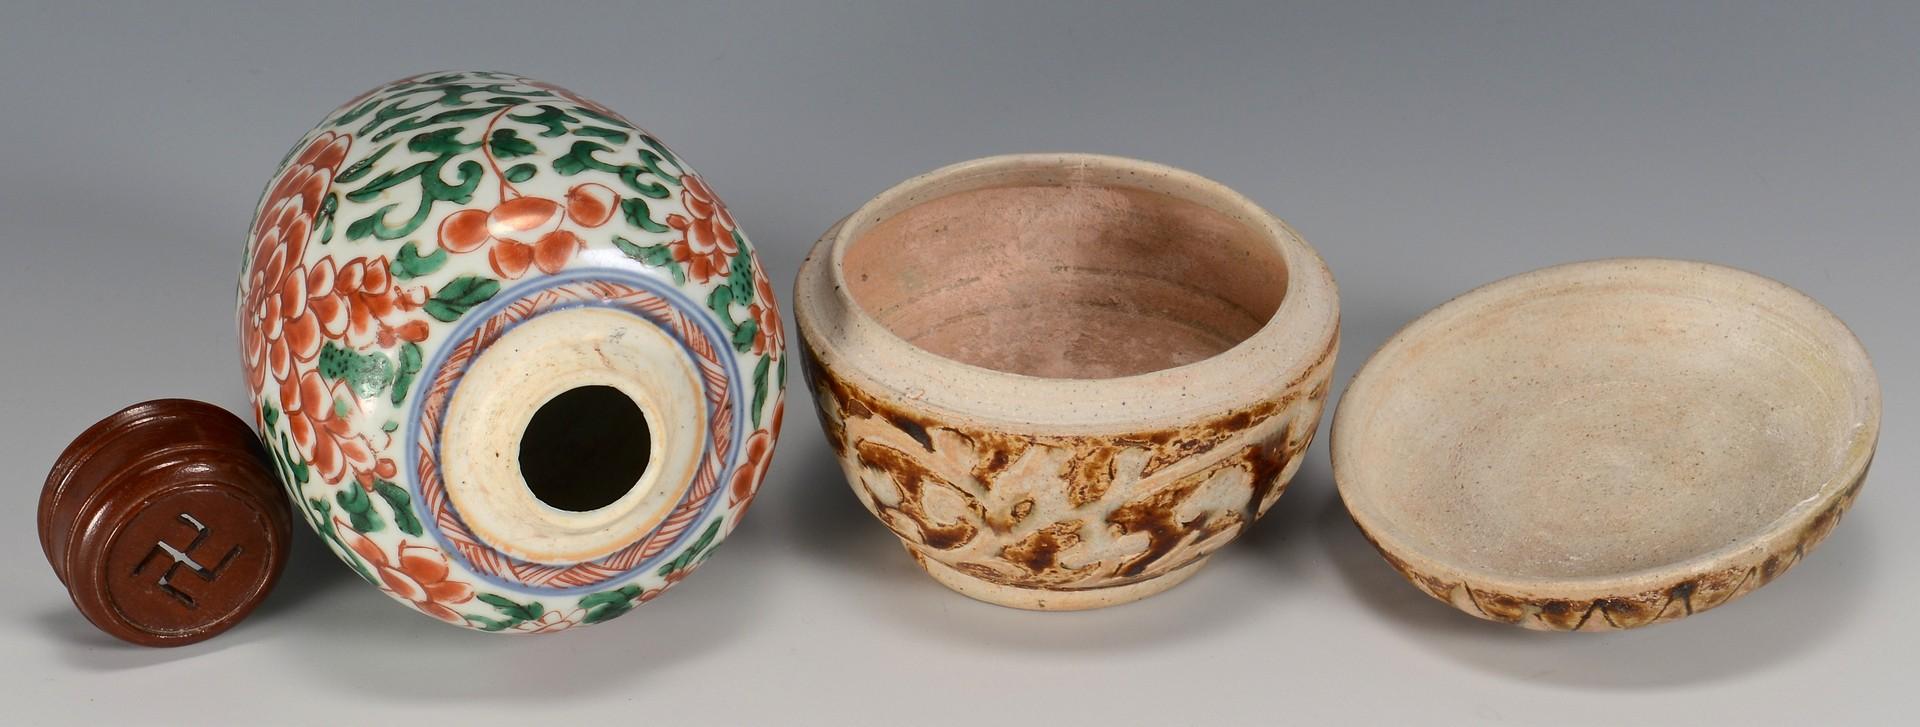 Lot 785: 5 Asian Decorative Items 15th-20th c.